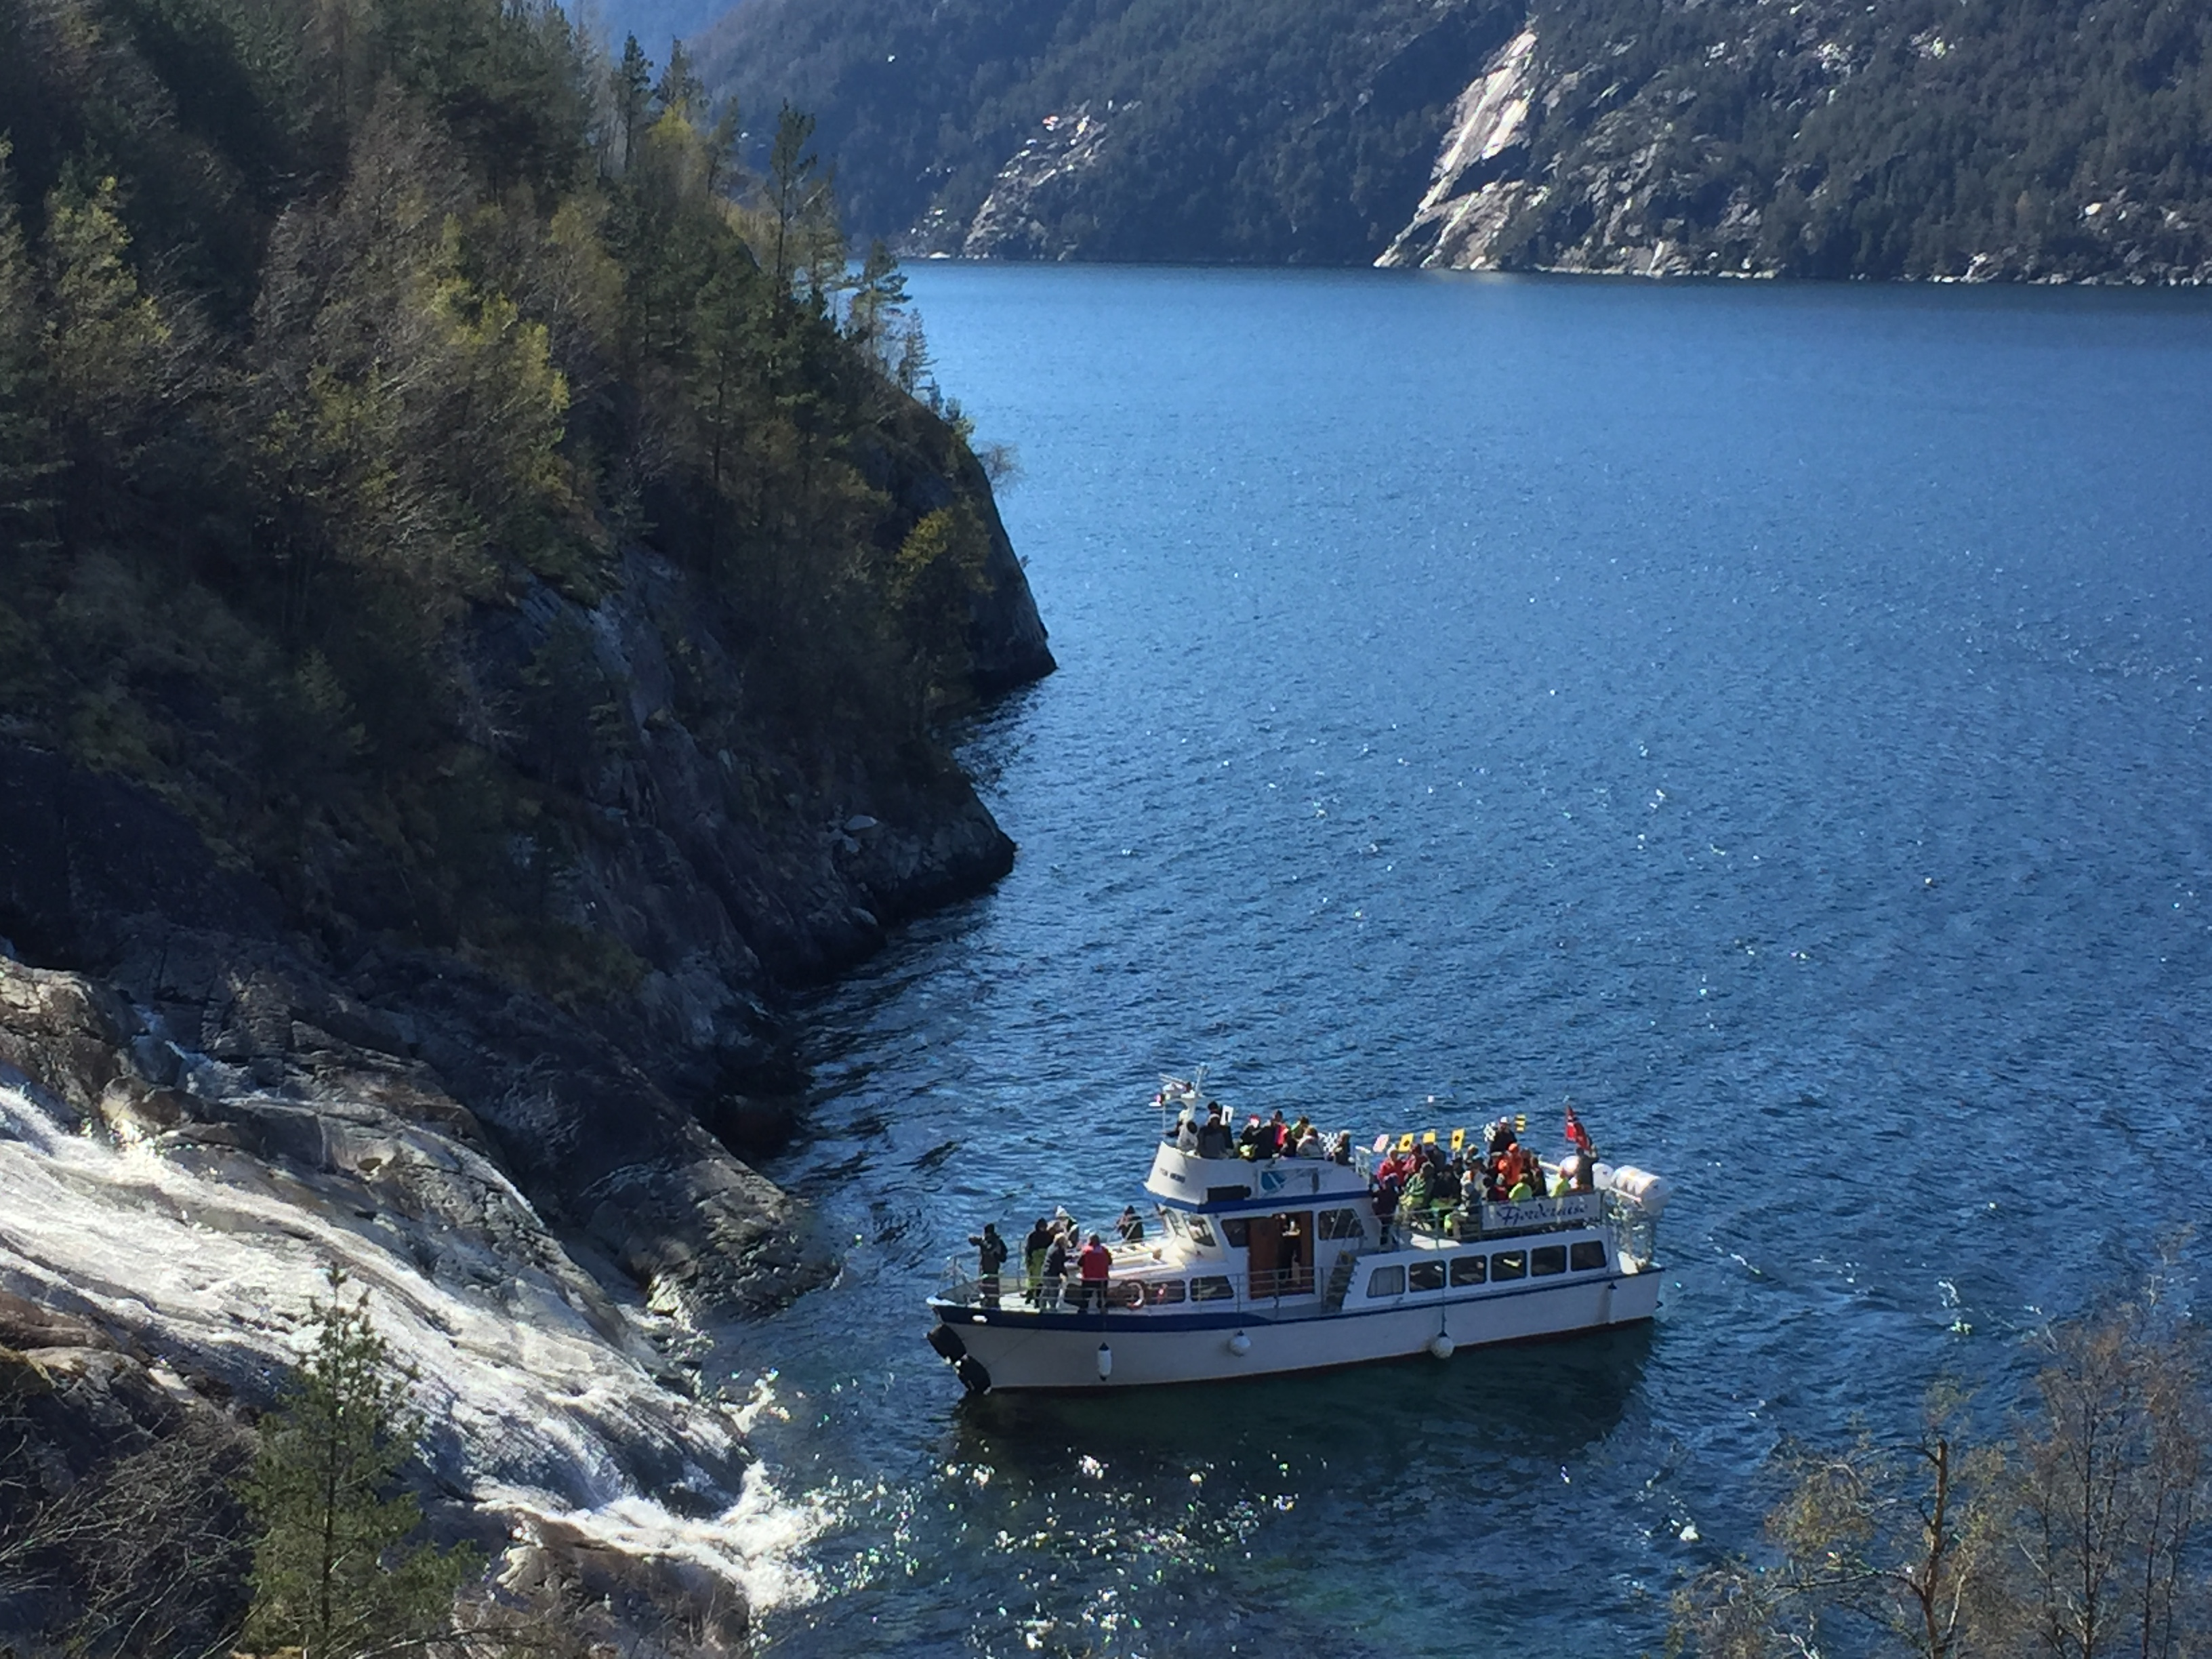 MV Stein Viking at the Langfoss waterfall